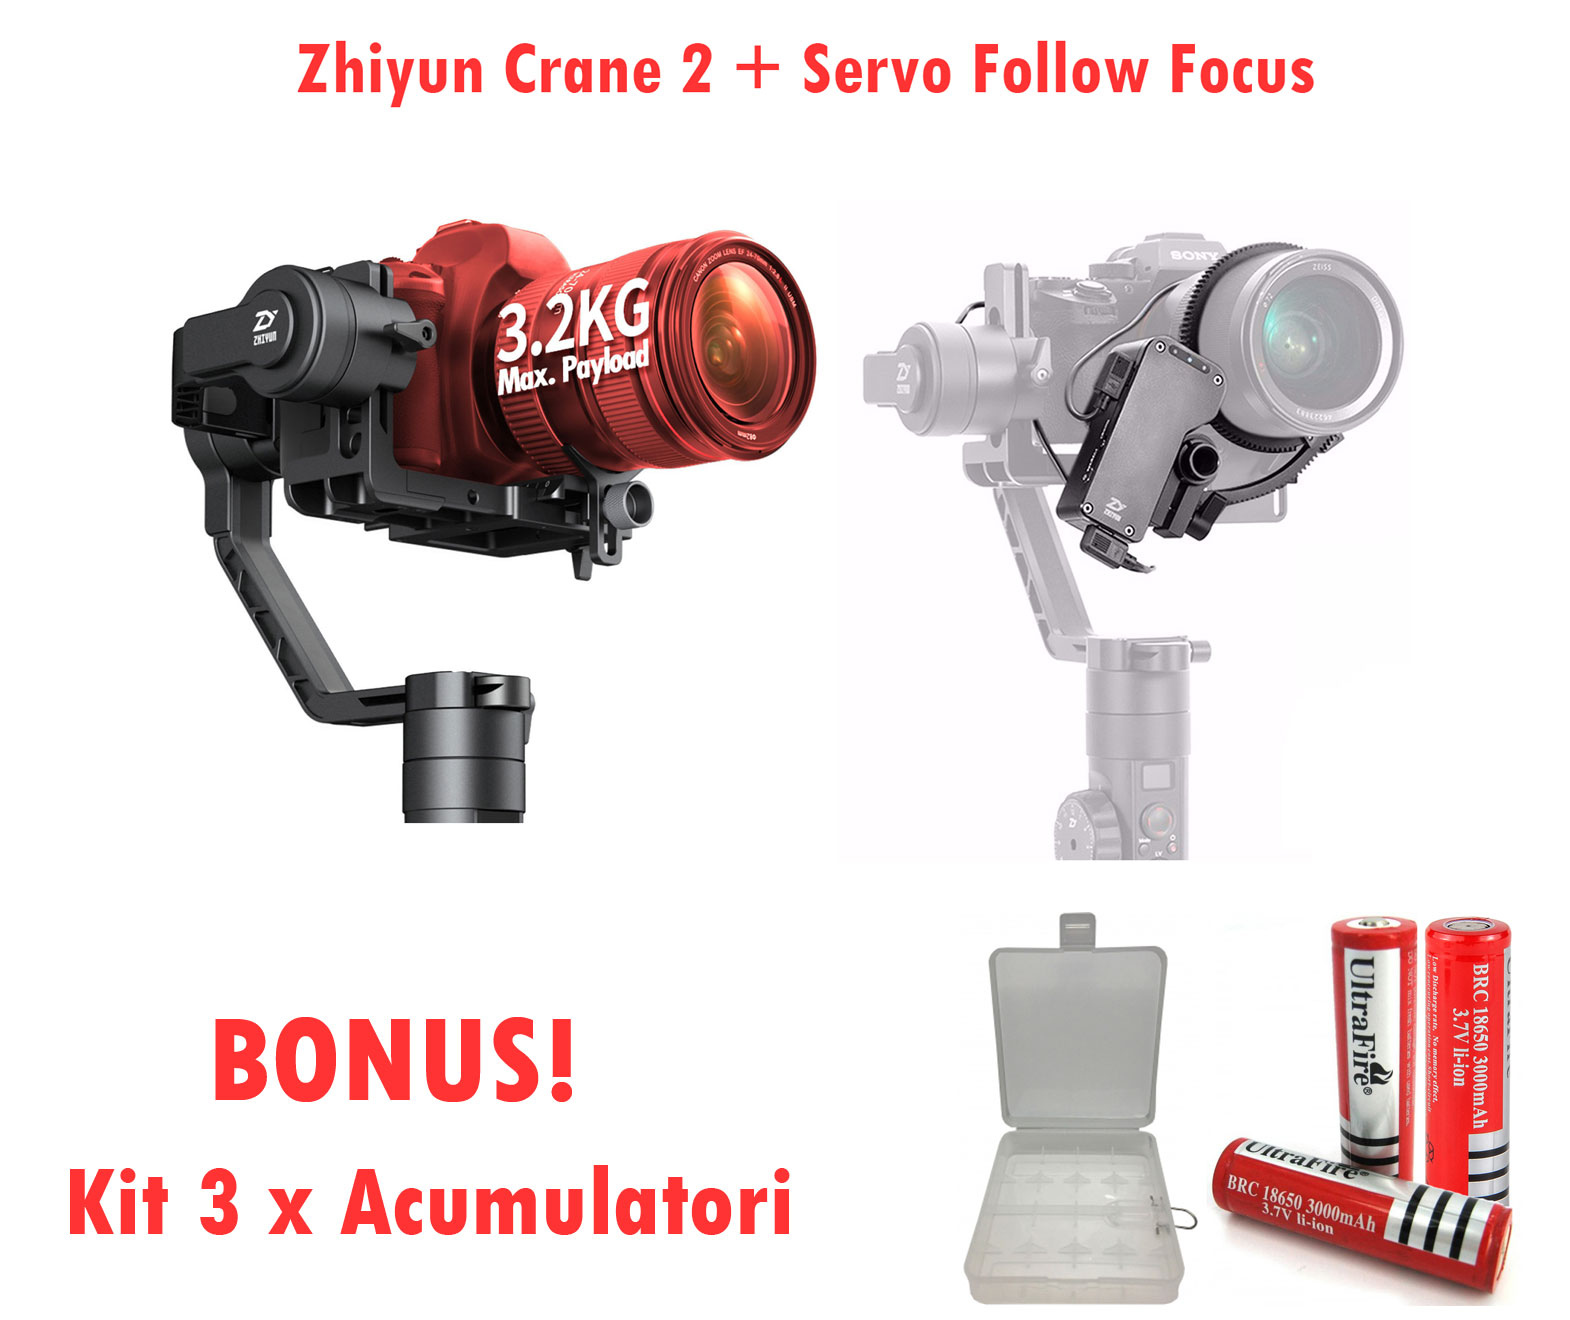 Zhiyun-Tech Crane 2 + Servo Follow Focus + BONUS